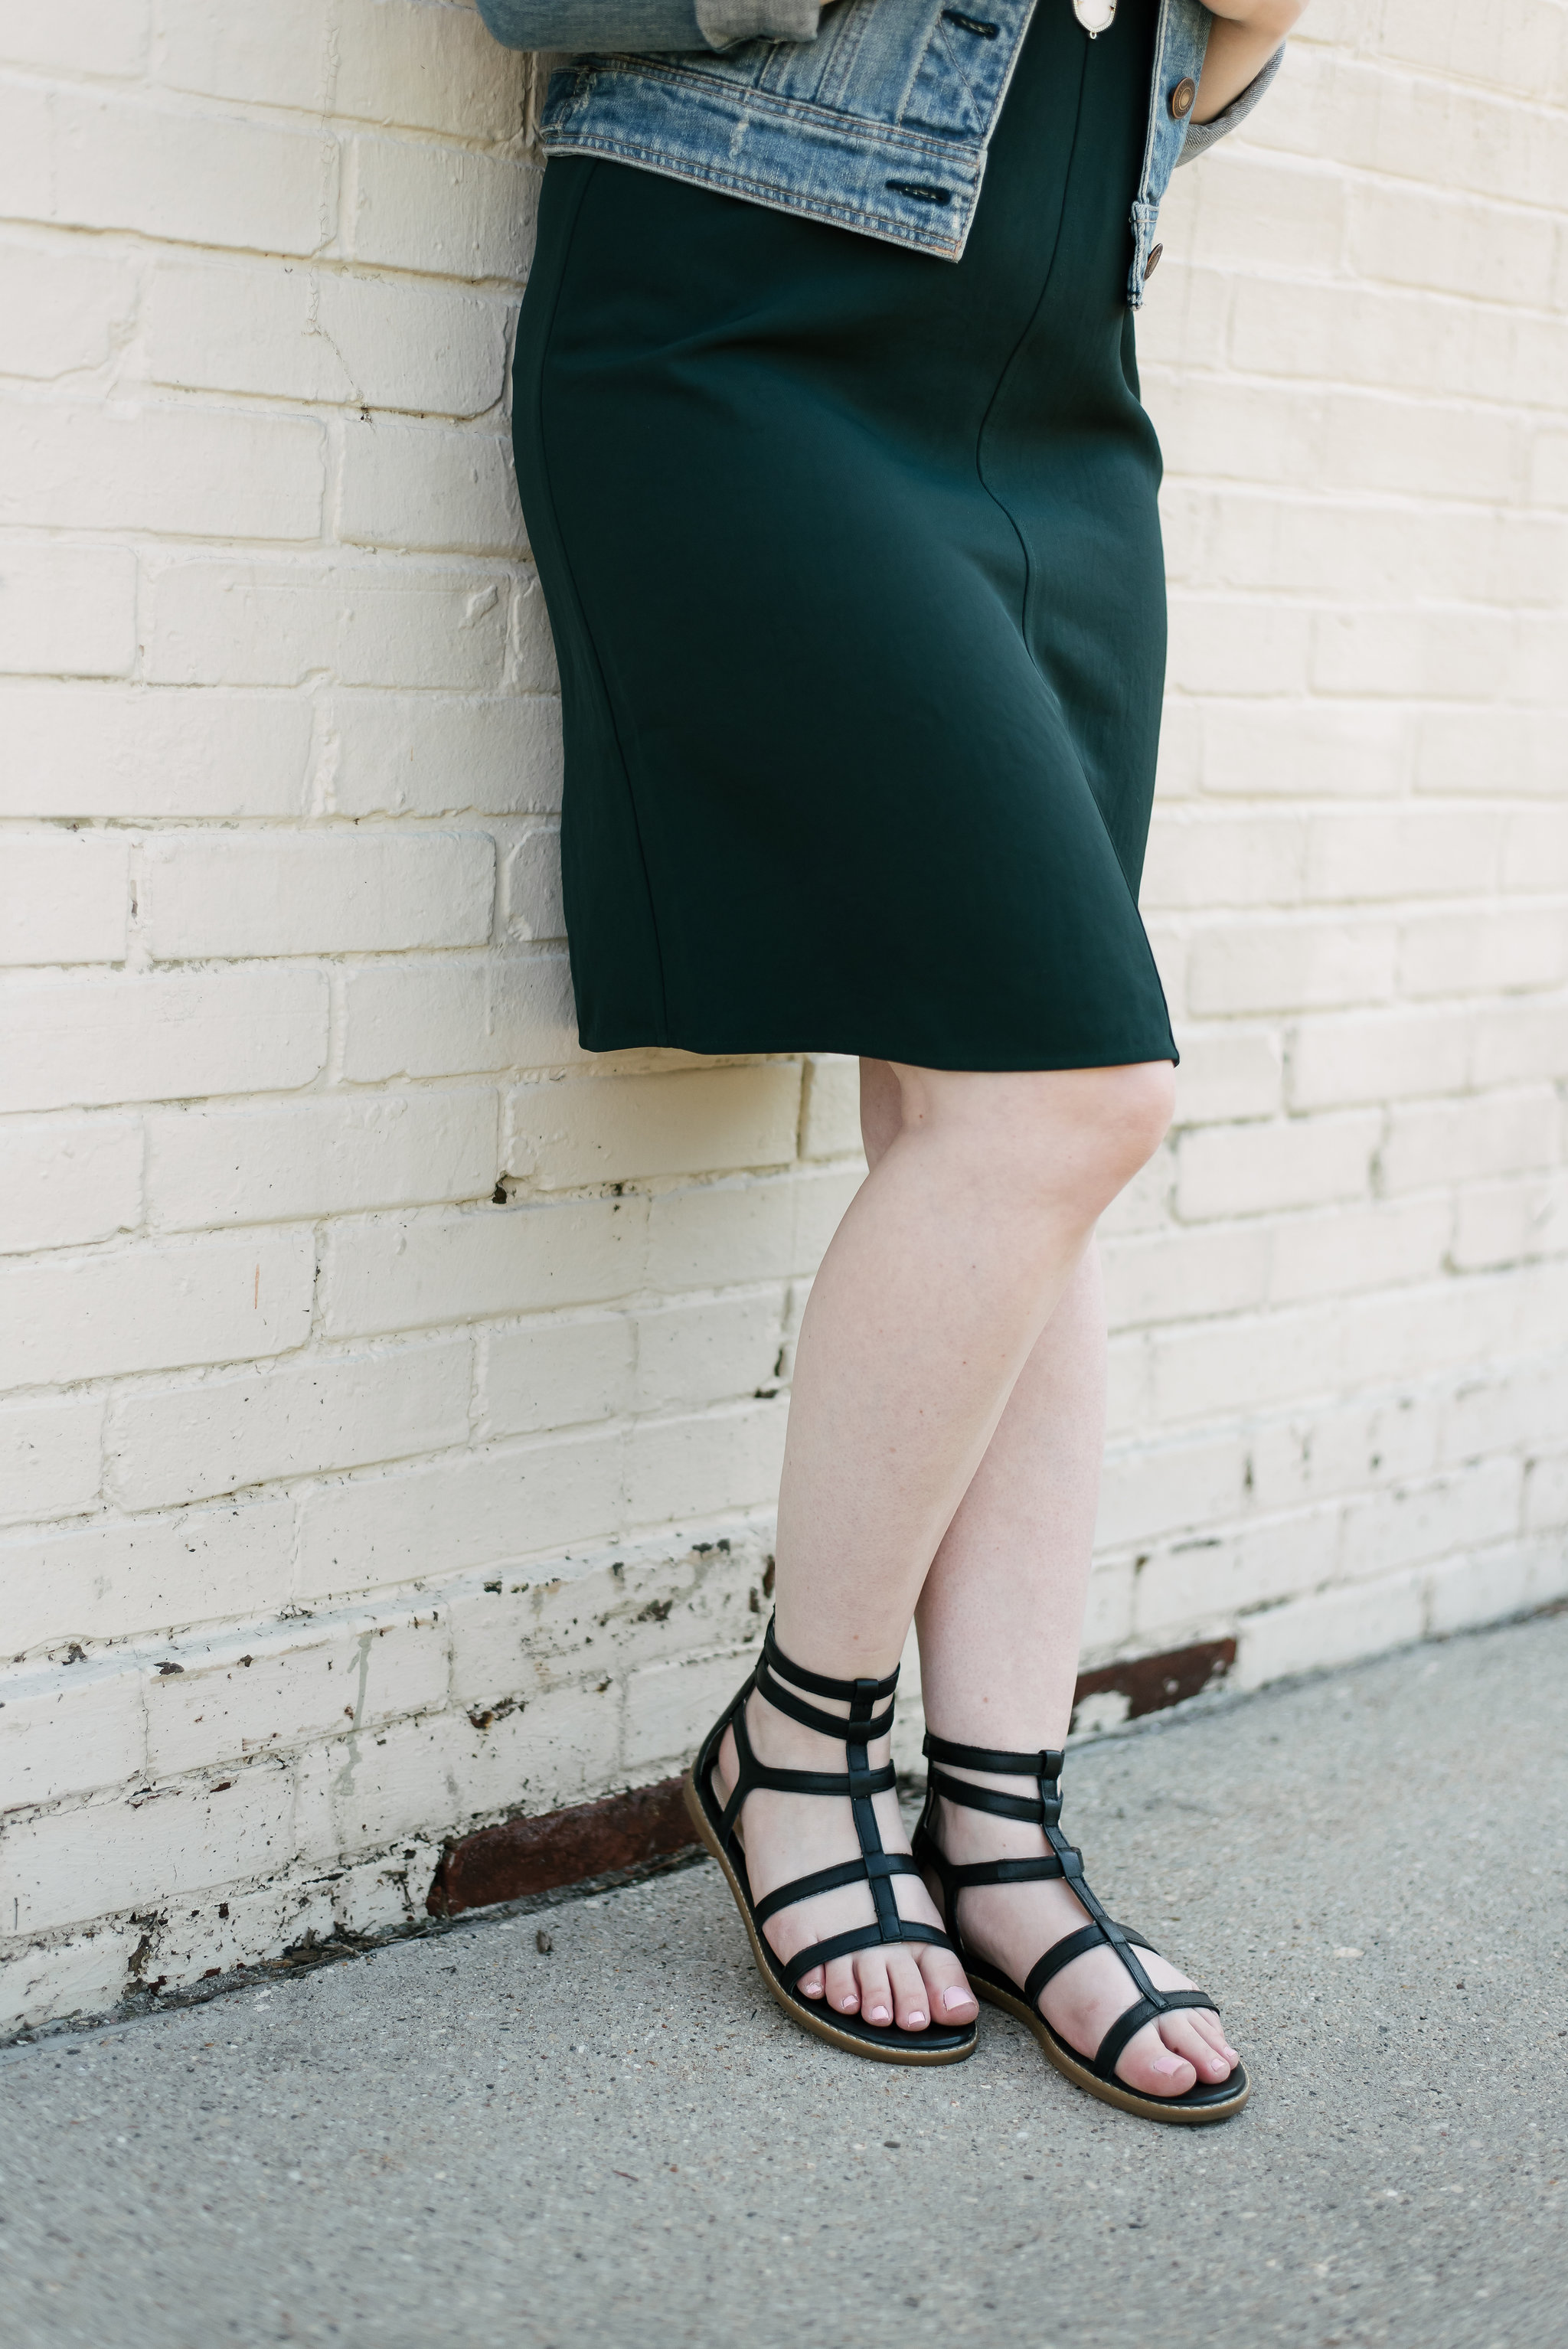 The Everlane GoWeave Tank Dress | Something Good, black sandals, hush puppy shoes, @danaerinw